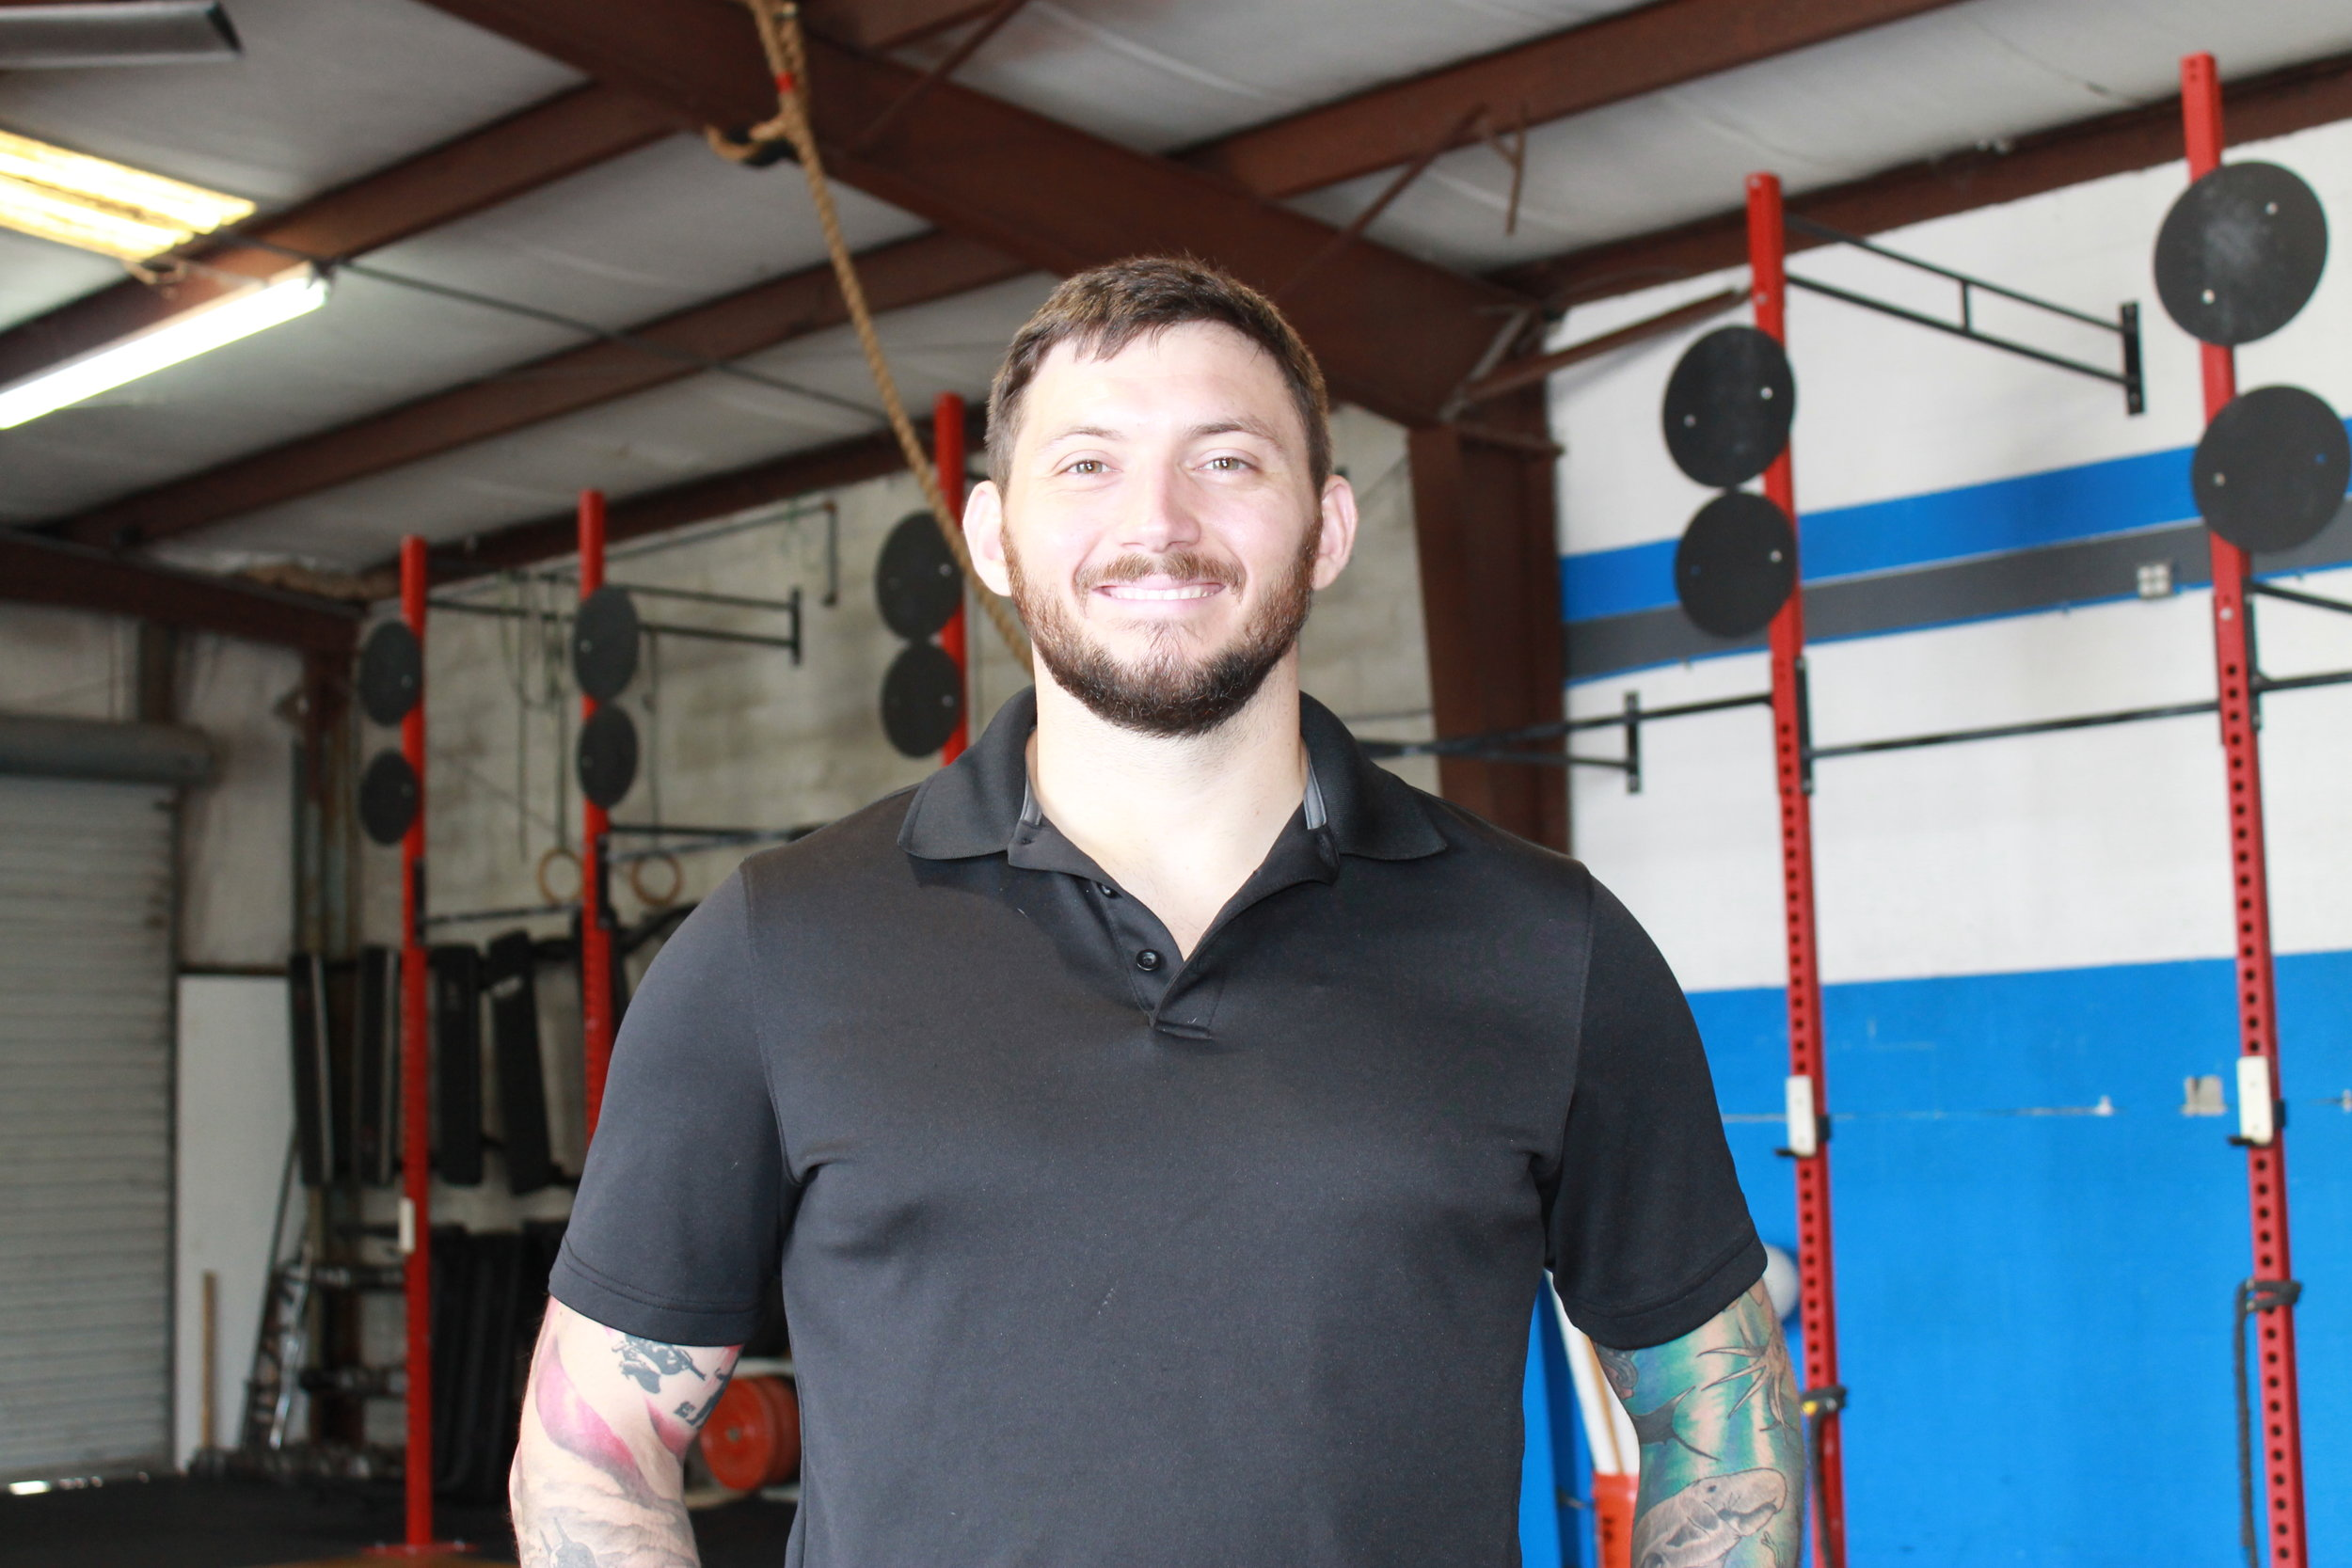 Nick Habich, ATC, LMT, CSCS, CFL1  Nick is a Certified Athletic Trainer, Licensed Massage Therapist, and Certified Strength and Conditioning Specialist. He is a dedicated athlete who regularly competes (with solid mediocrity) in local 5ks, Crossfit, and Olympic Weightlifting competitions. He is also the Co-Owner of Crossfit Cape Coral, and has been coaching functional fitness style classes for over 4 years. He is an 8 year US Army Veteran.   Certifications  +Bachelor of Science in Athletic Training        Florida Gulf Coast University +Certified Strength and Conditioning Specialist        National Strength and Conditioning Association +Licensed Massage Therapist        Florida Academy +Functional Movement Screen Certified        Functional Movement Systems +Instrument Assisted Manual Therapy Certification        Rock Tape Rock Blades +Level 1 Trainer        Crossfit Inc +Sports Performance Coach        USA Weightlifting